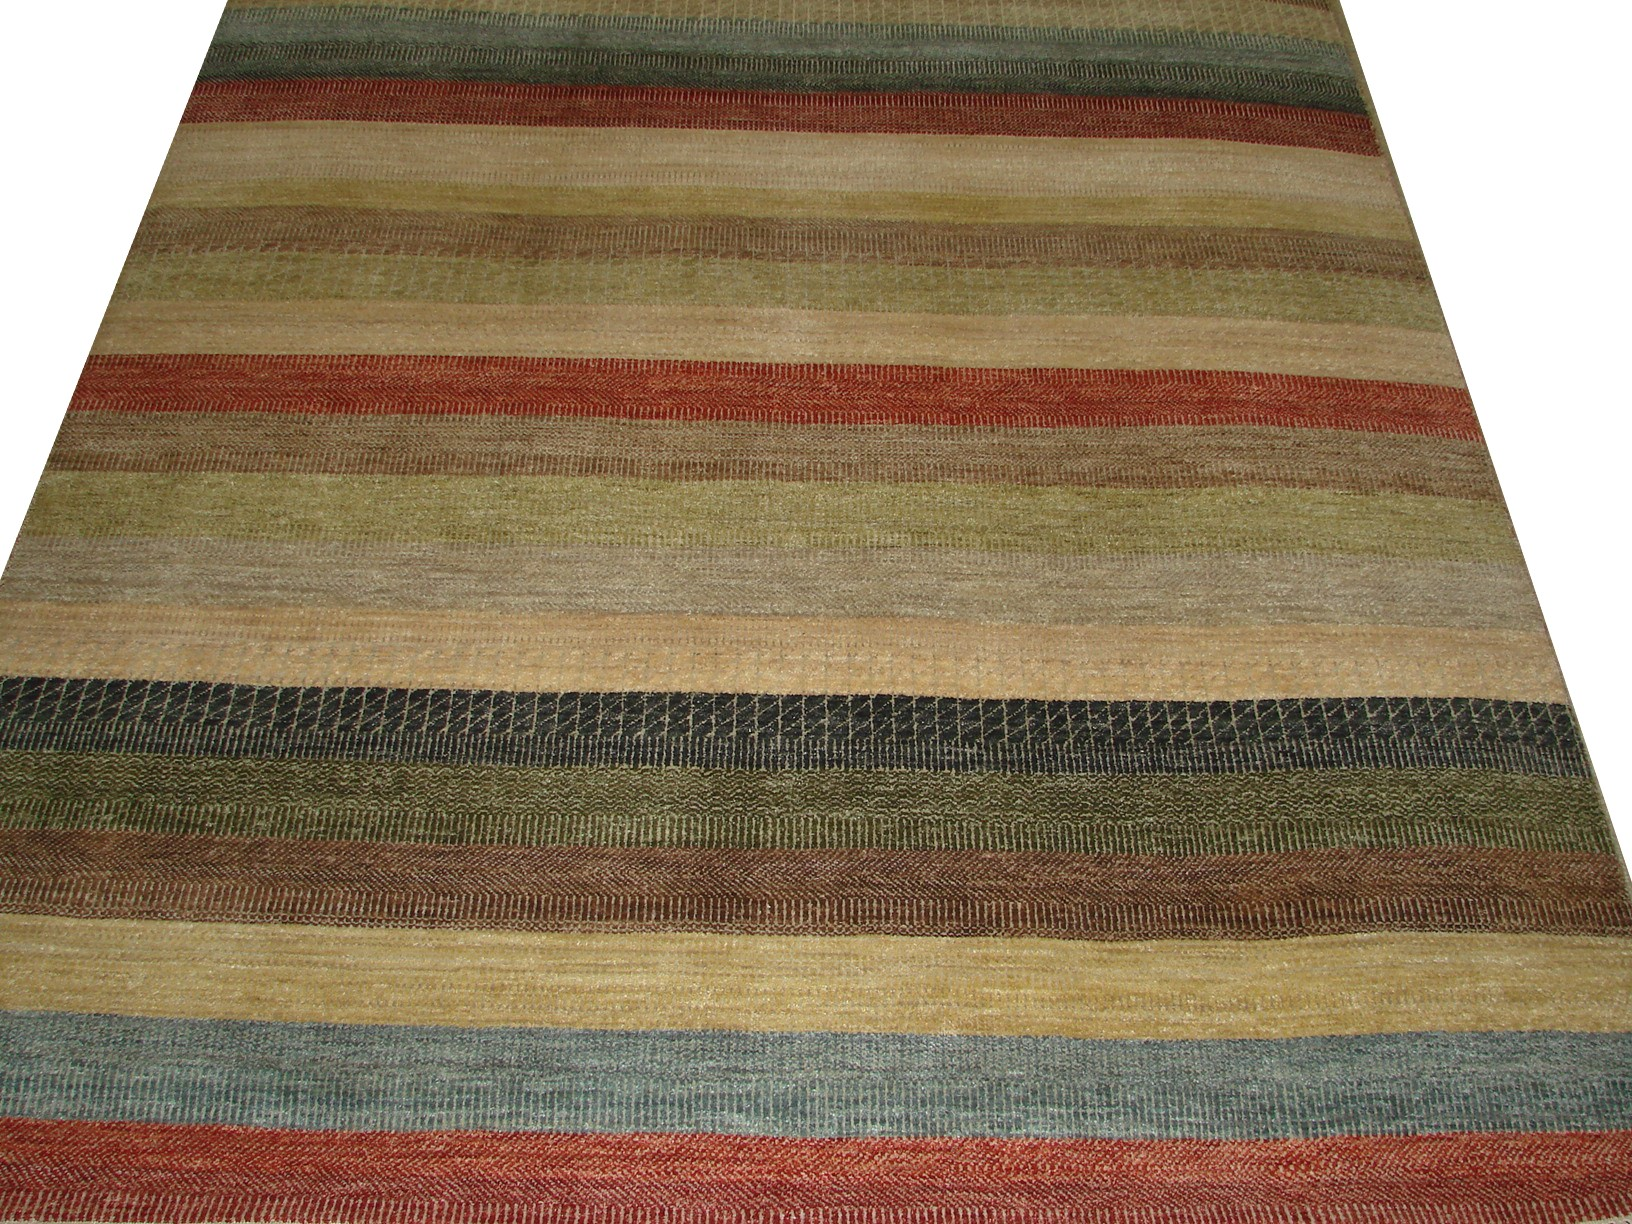 6x9 Contemporary Hand Knotted Wool Area Rug - MR16228